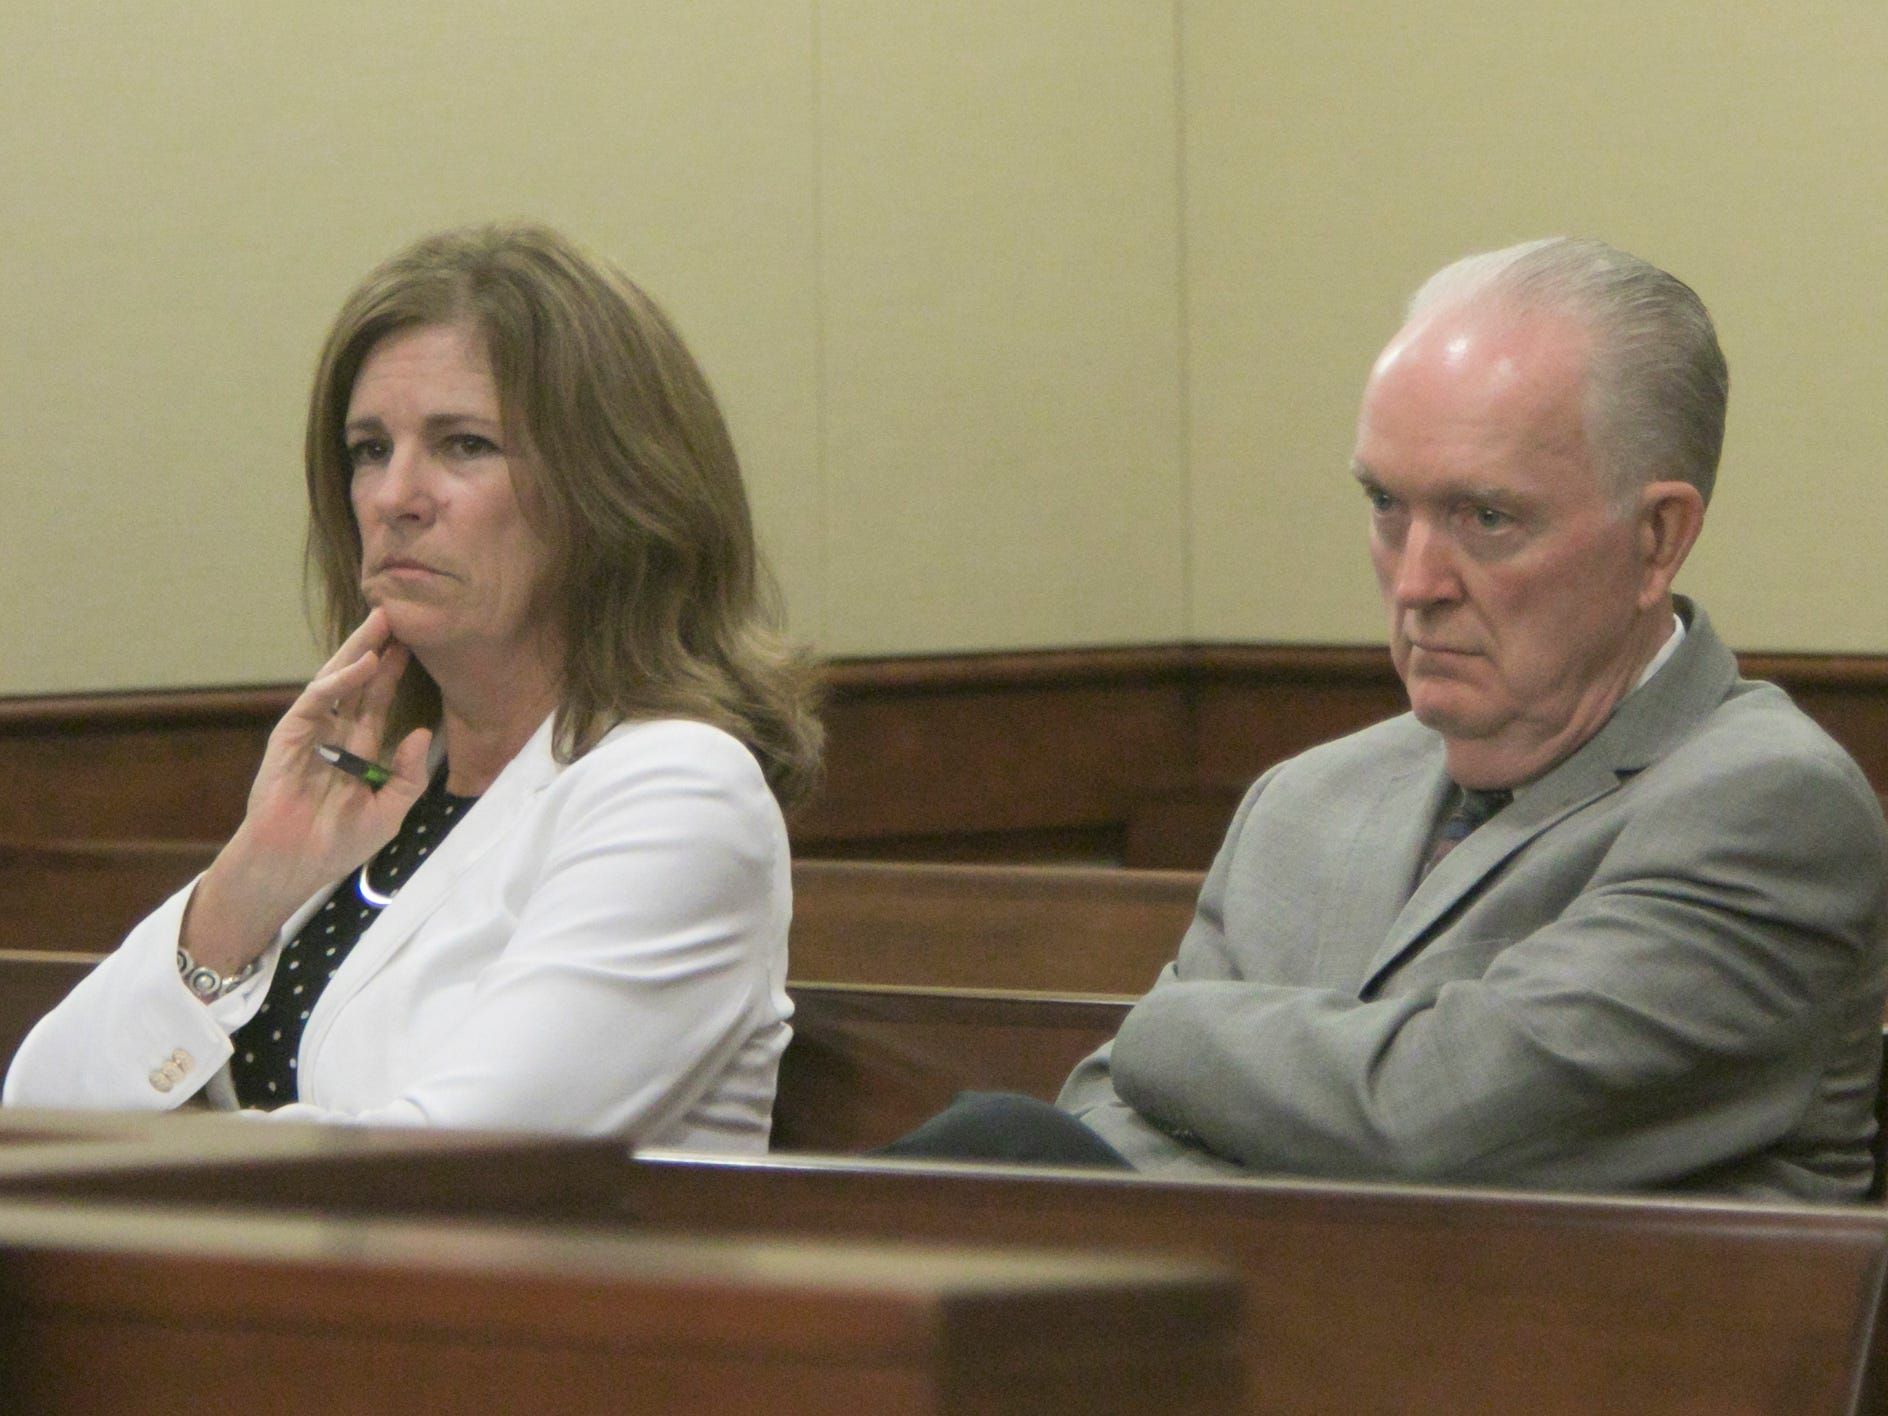 Judge Theresa Brennan's sister Denise Brennan-Nelson and uncle Vince Brennan listen to testimony in the Judicial Tenure Commission hearing Thursday, Oct. 4, 2018.